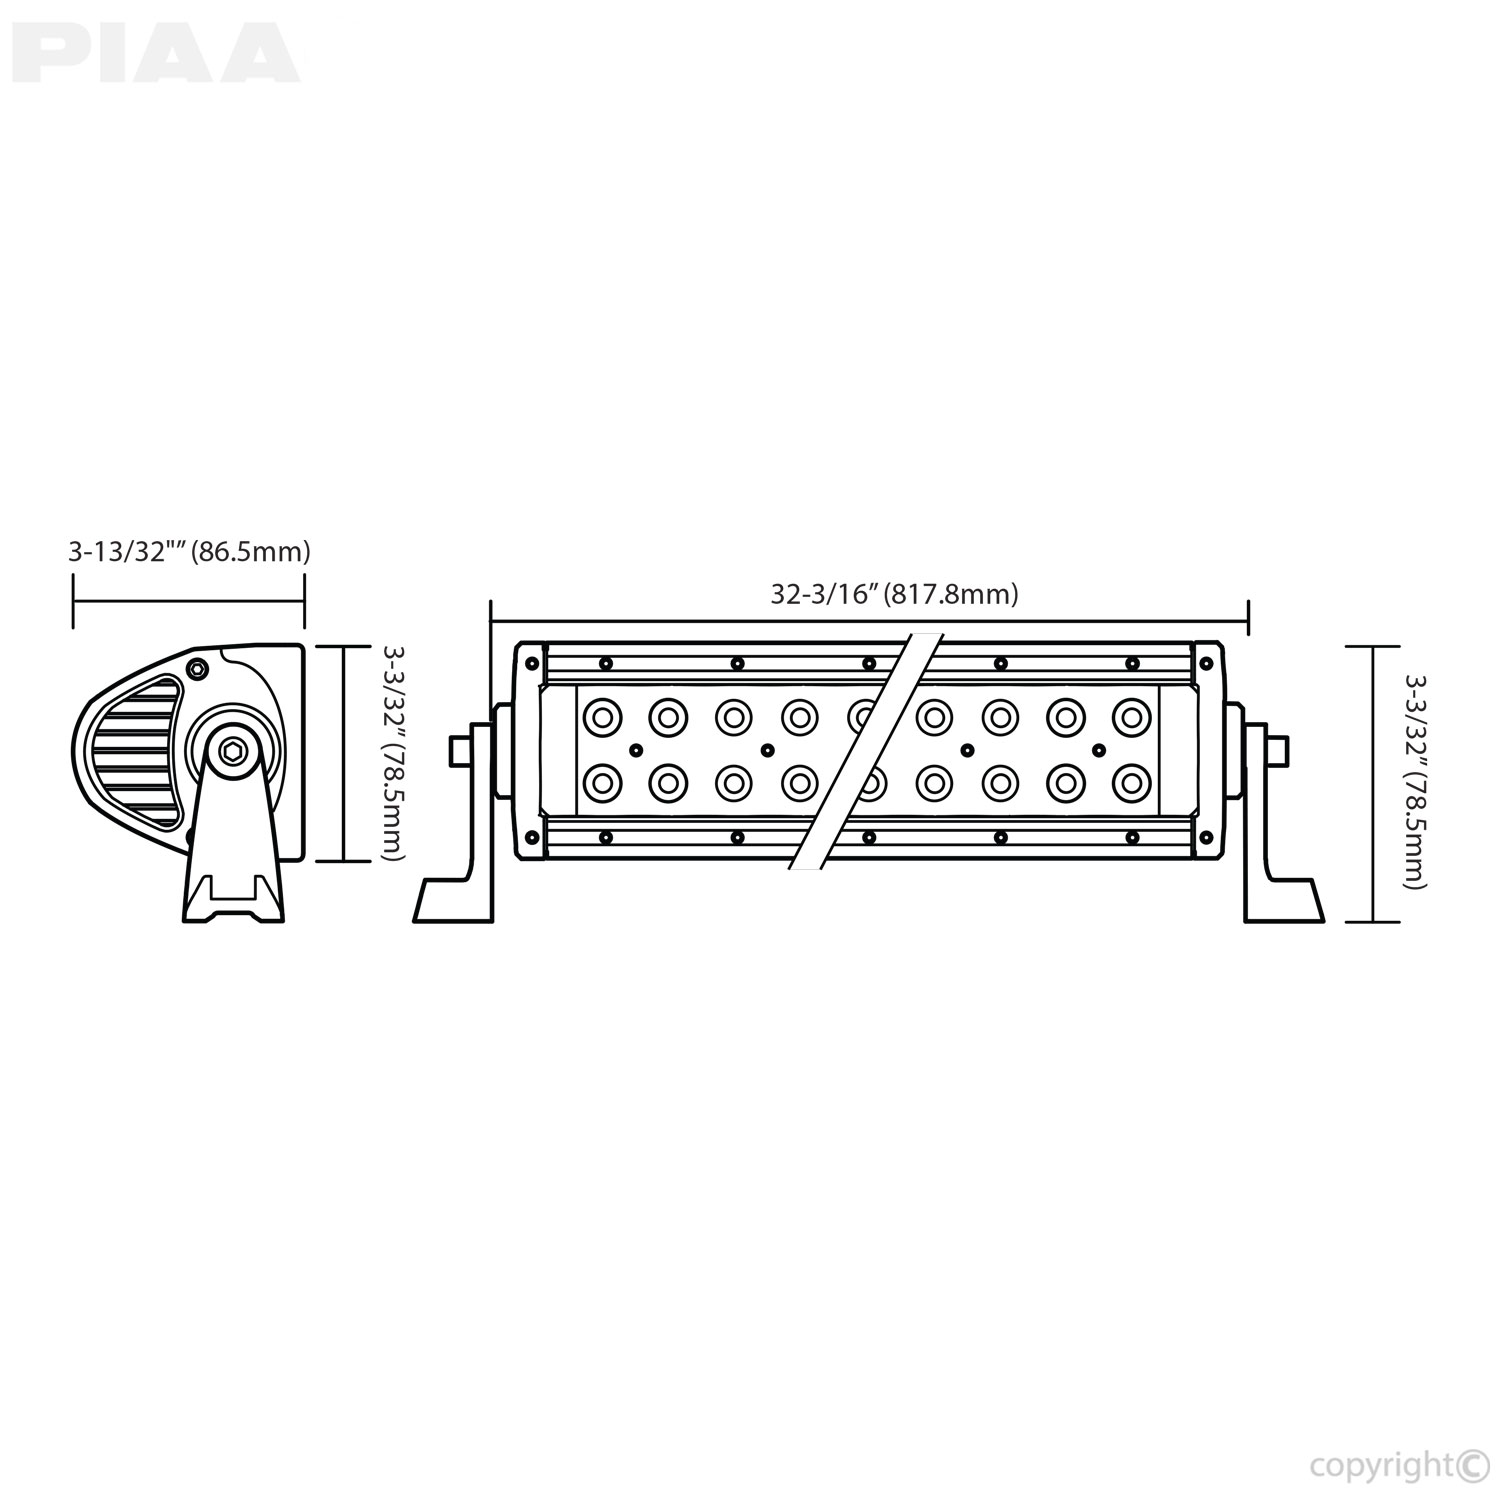 PIAA Quad 30inch LED Light Bar Dimensions